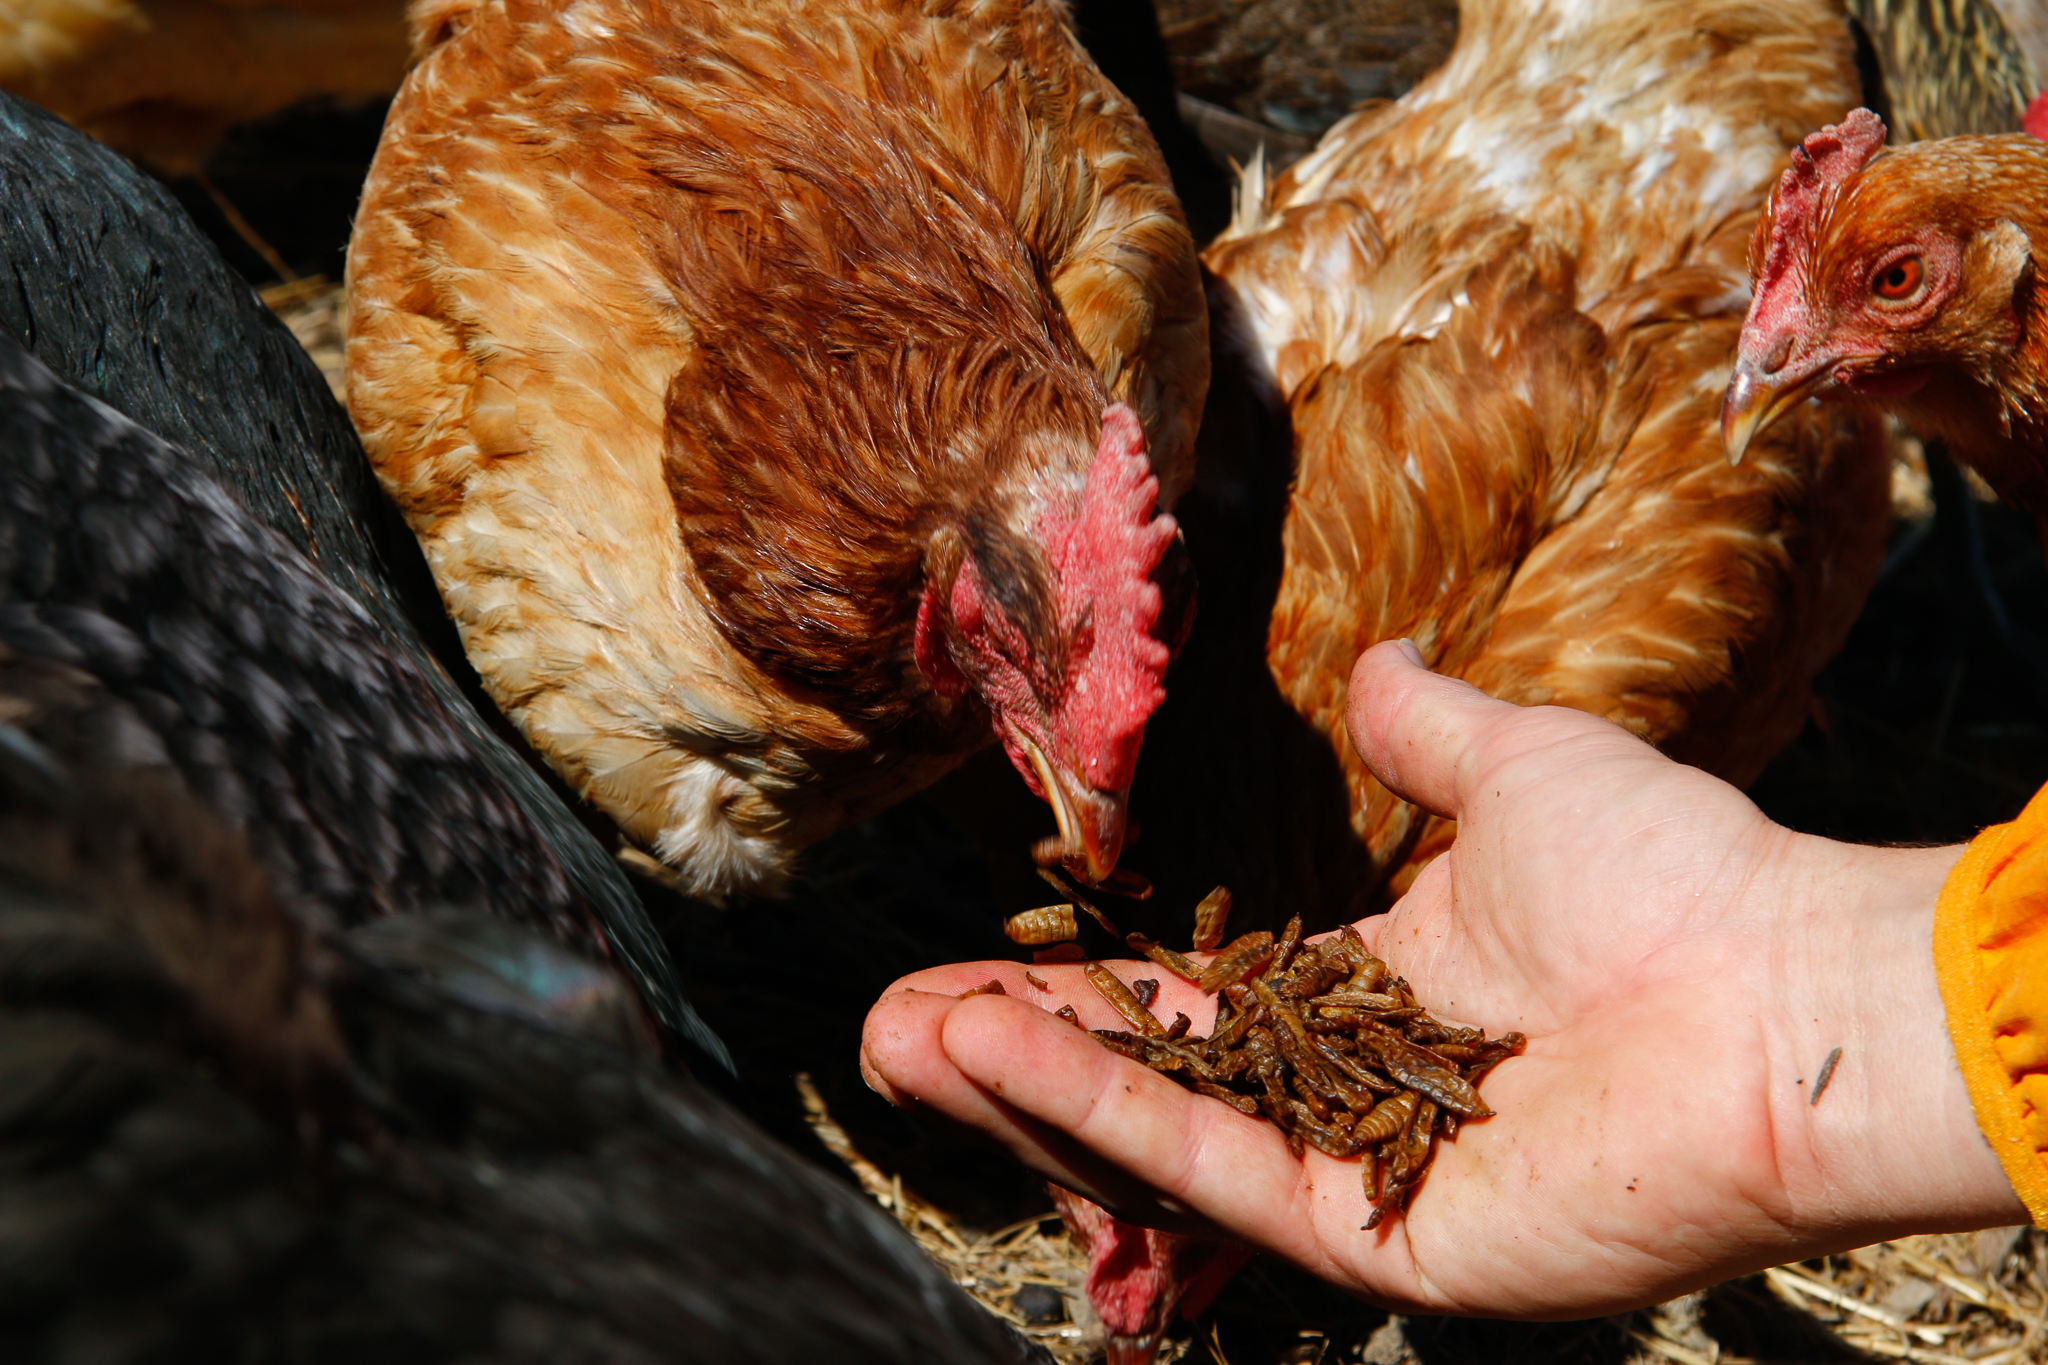 Many black soldier fly larvae producers are working toward federal approval of their products as poultry feed.